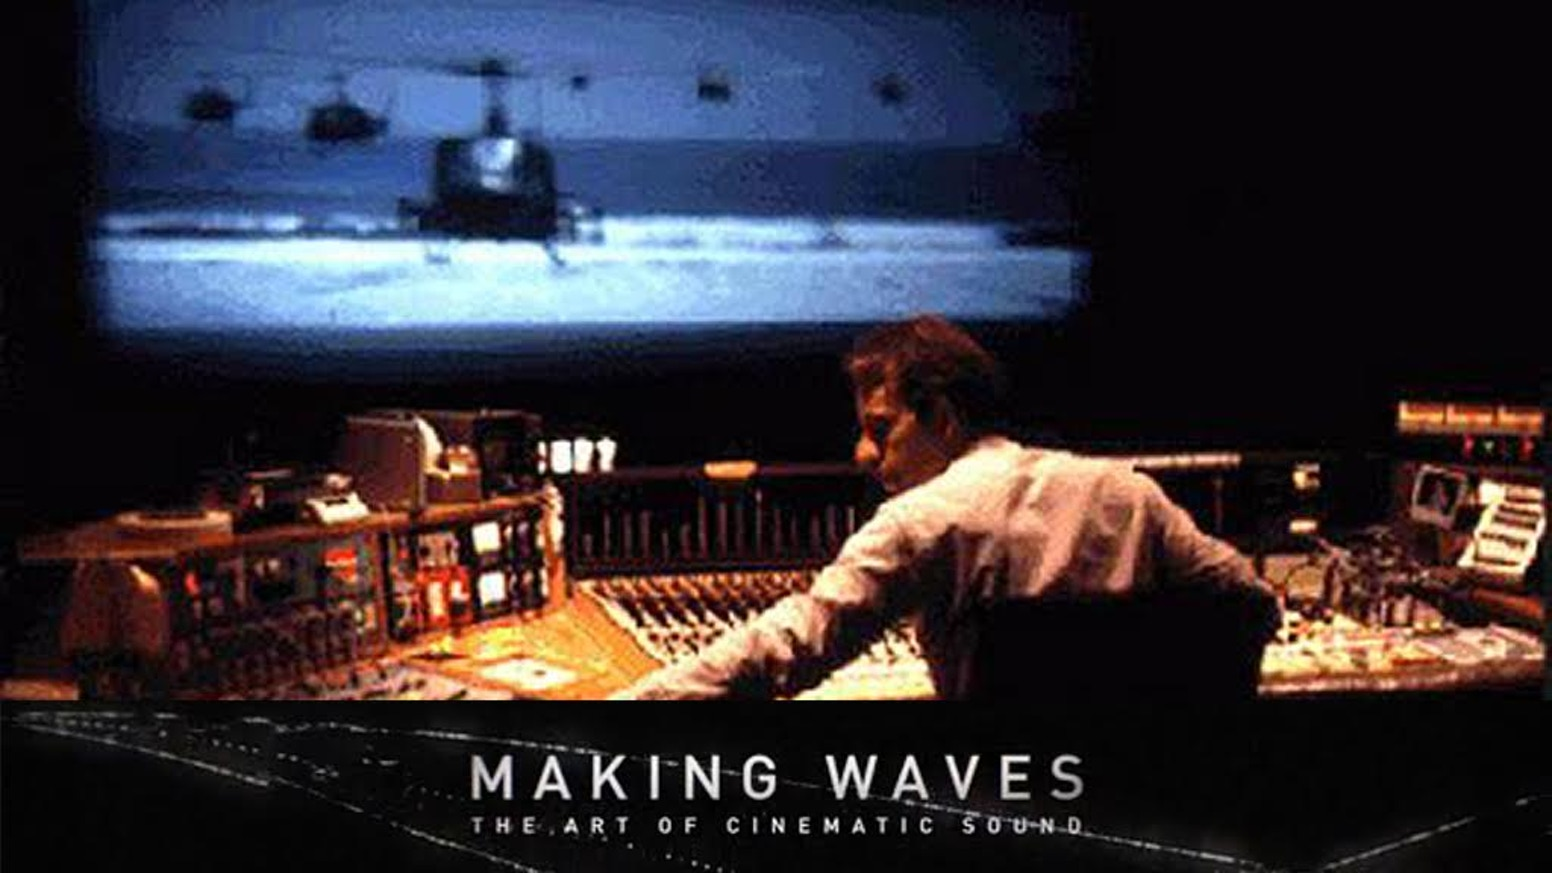 MAKING WAVES: The Art of Cinematic Sound by Ain't Heard